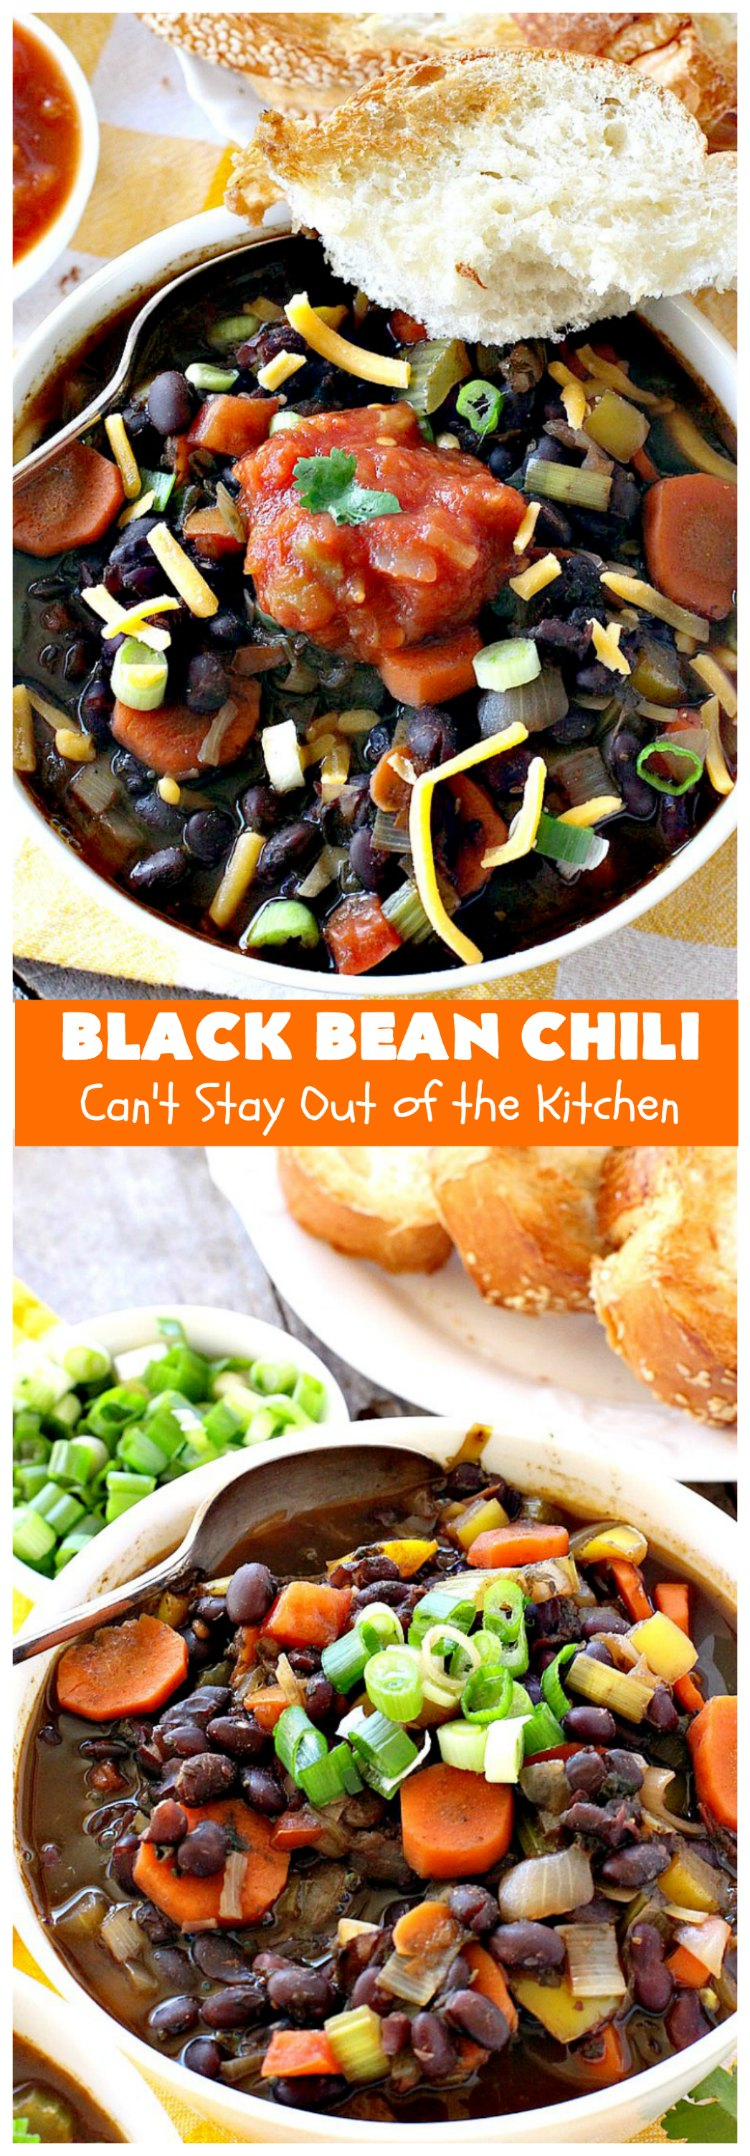 Black Bean Chili | Can't Stay Out of the Kitchen | fabulous #BlackBean #chili #recipe that's perfect for cold, winter days. It's healthy, #vegan, #GlutenFree & #CleanEating. #TexMex #soup #MeatlessMondays #BlackBeanChili